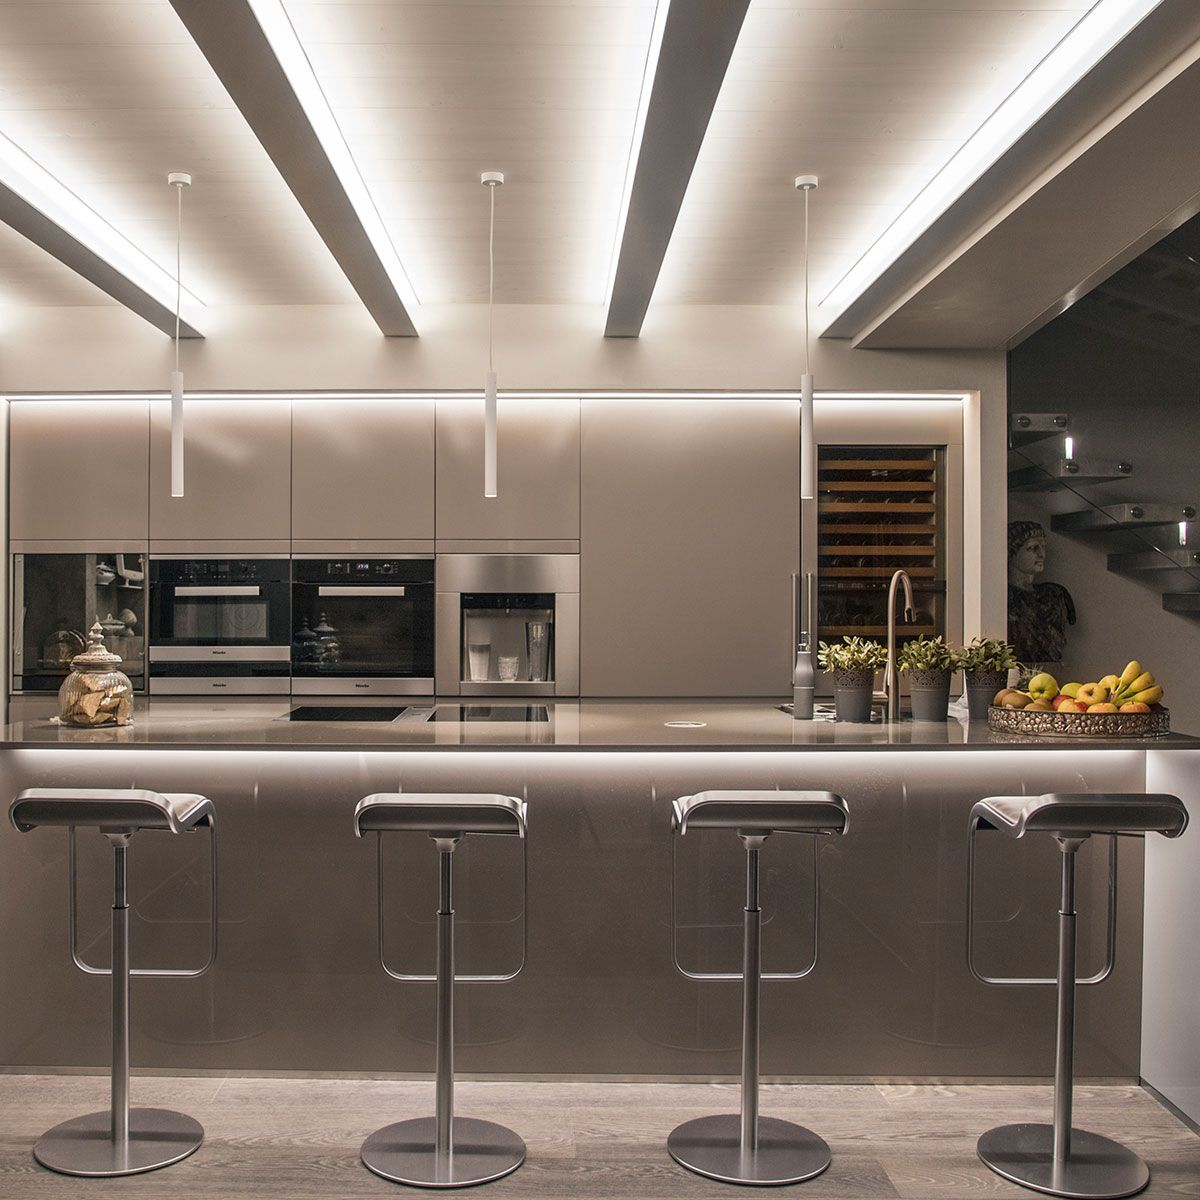 Every Detail Is Skilfully Illuminated The Flat Was A Loft Conversion With The Original Beams 2020 Ceiling Light Design Open Plan Kitchen Living Room Celling Design